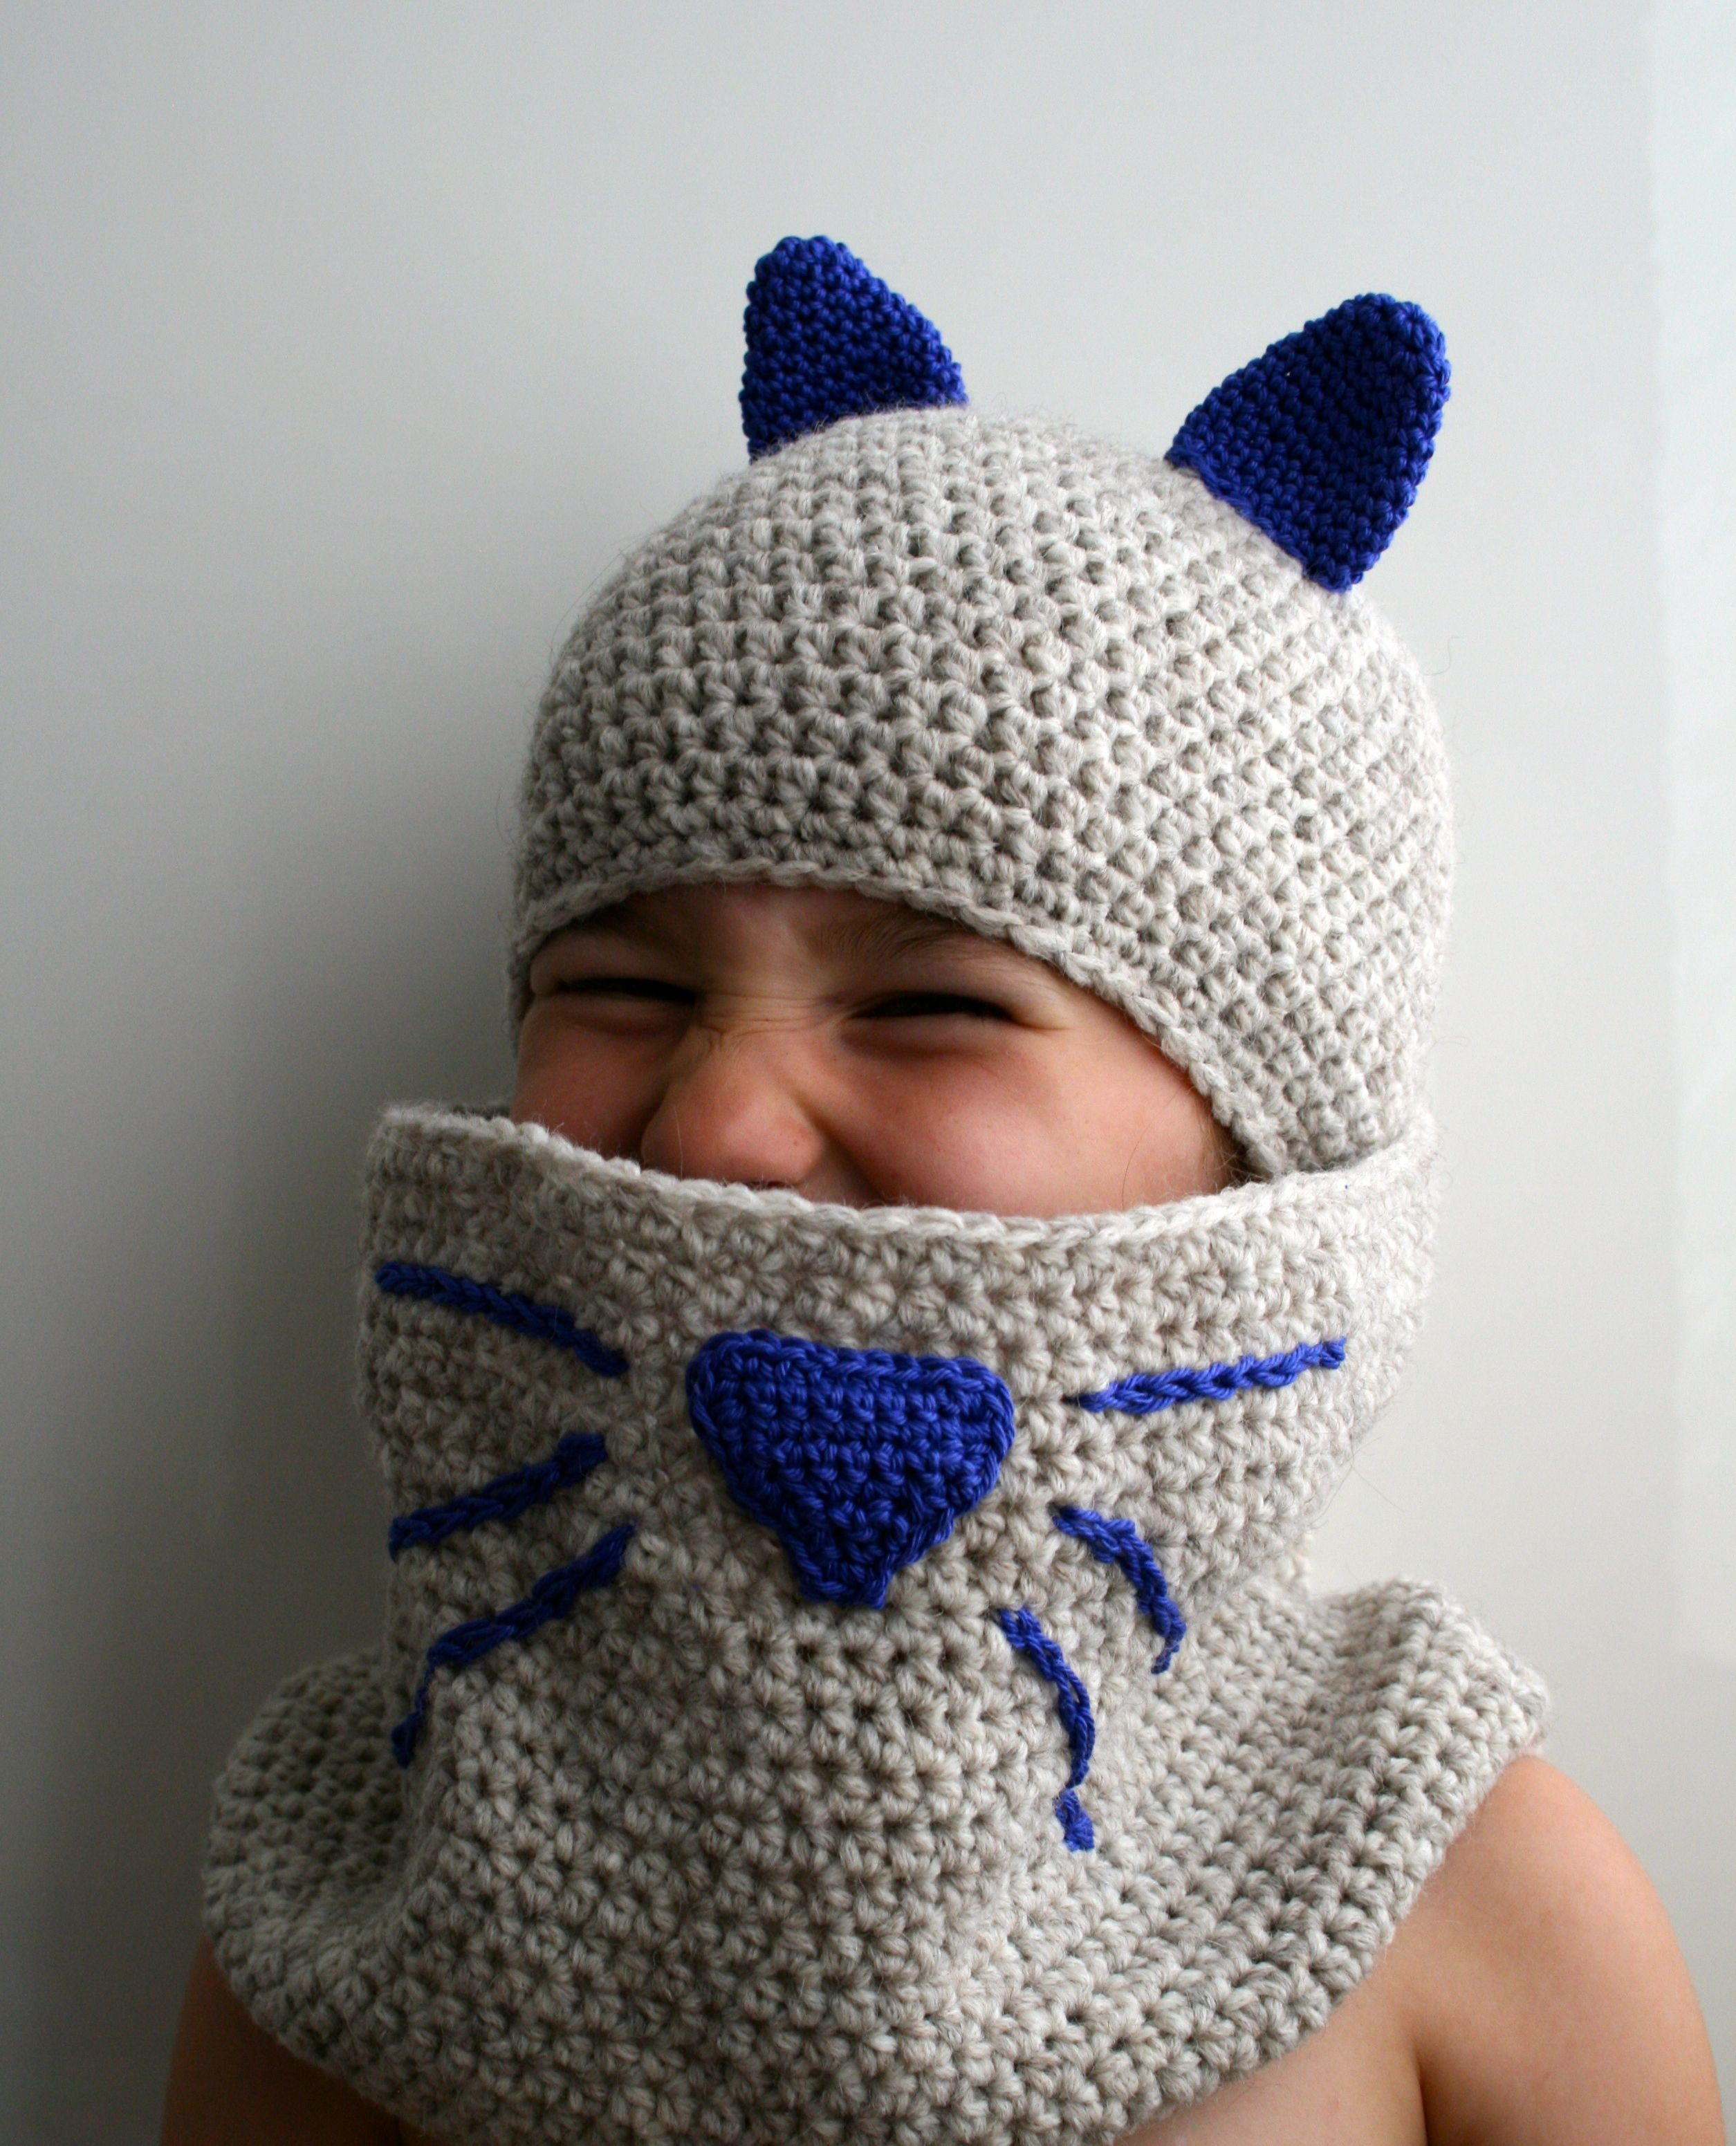 Crochet Caterpillar Hat Pattern : baby crochet cat hat and cowl Archives - Luz Patterns